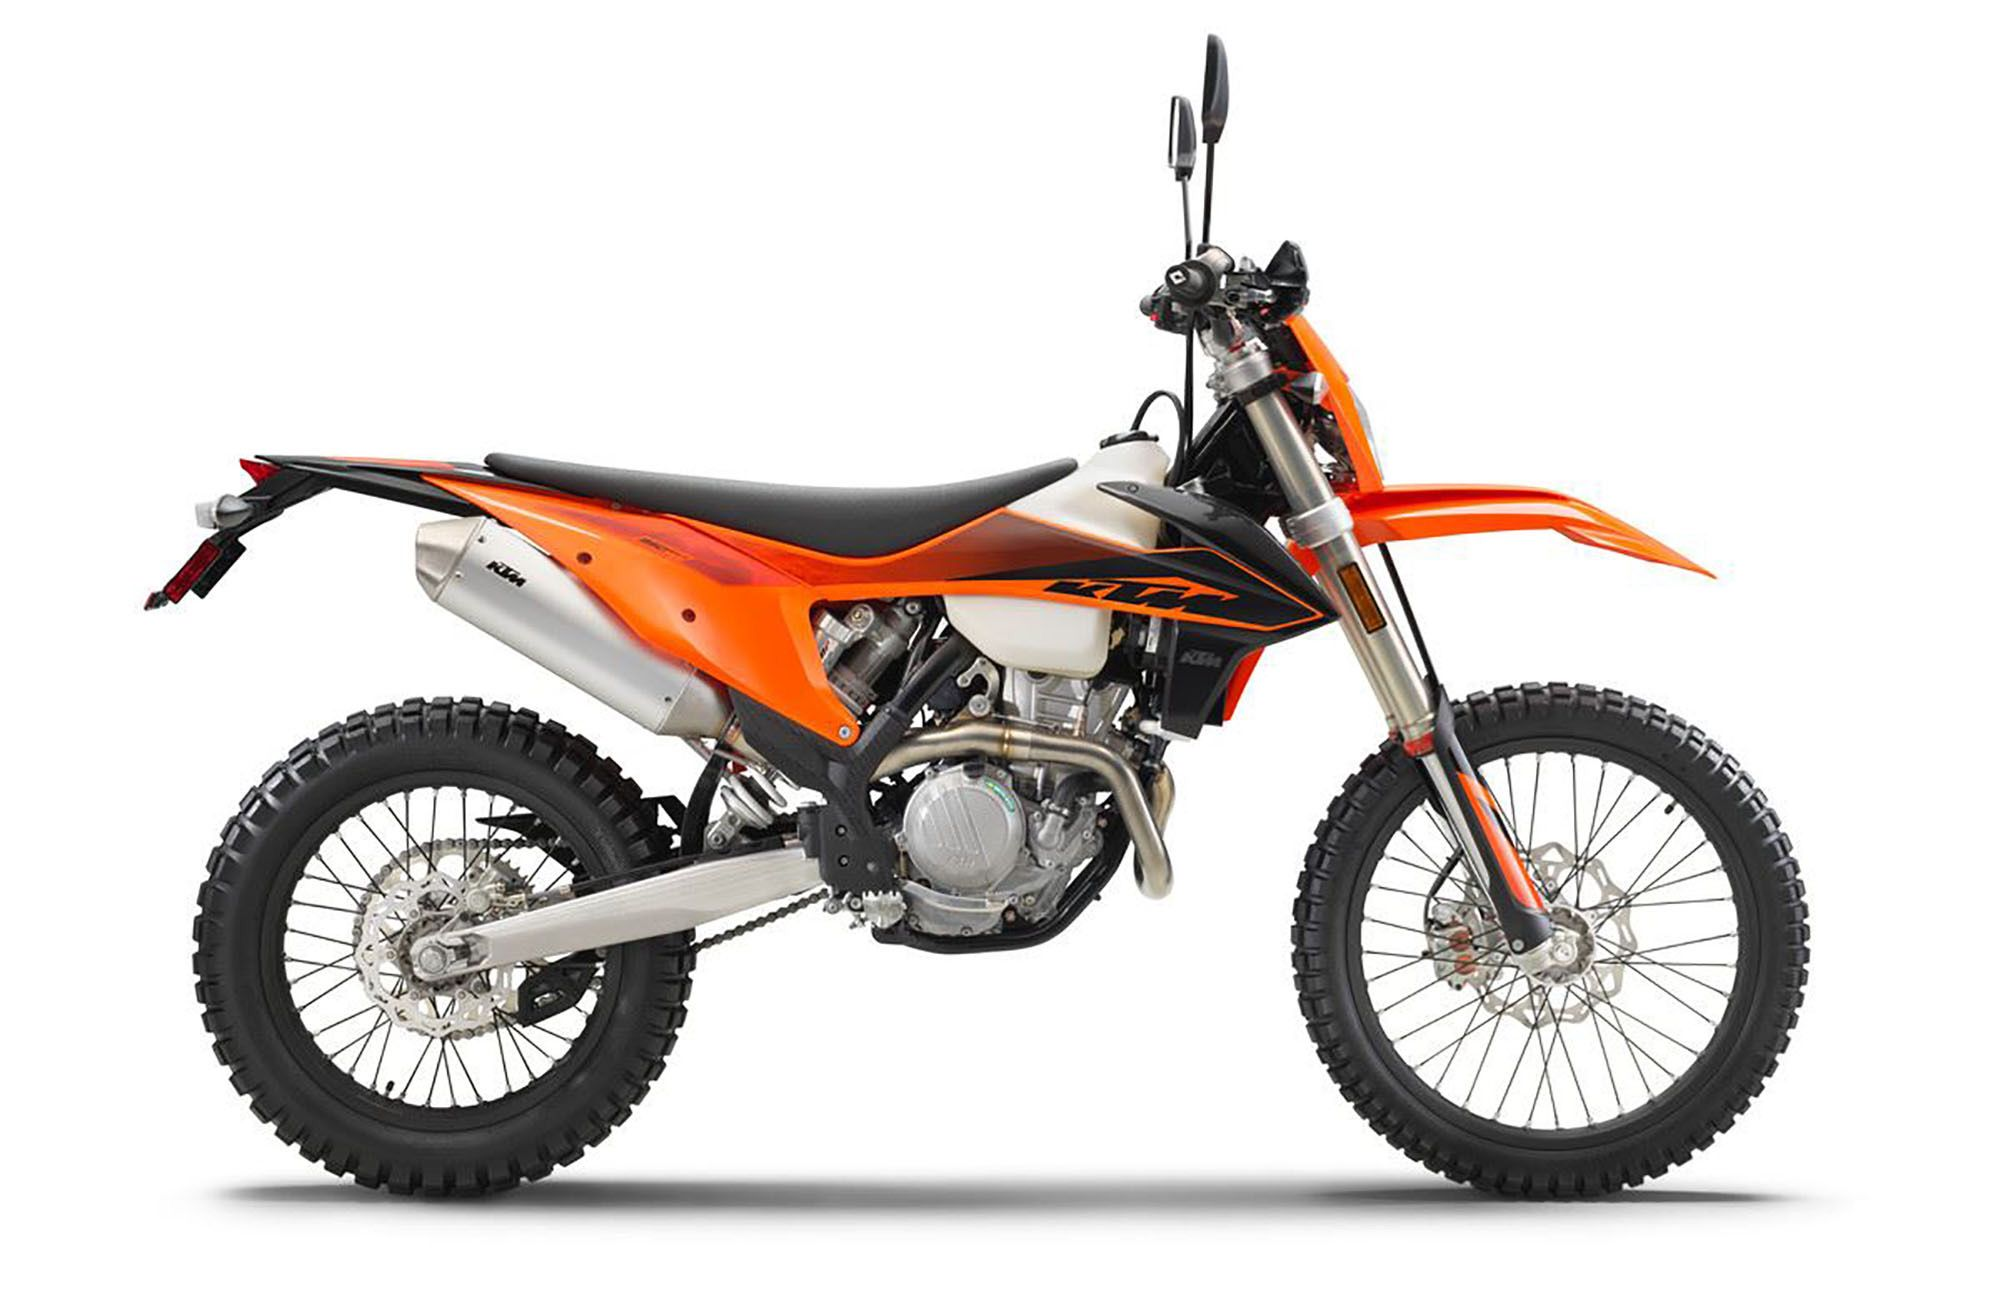 KTM LAUNCHES A NEW GENERATION OF ENDURO MACHINES Ktm